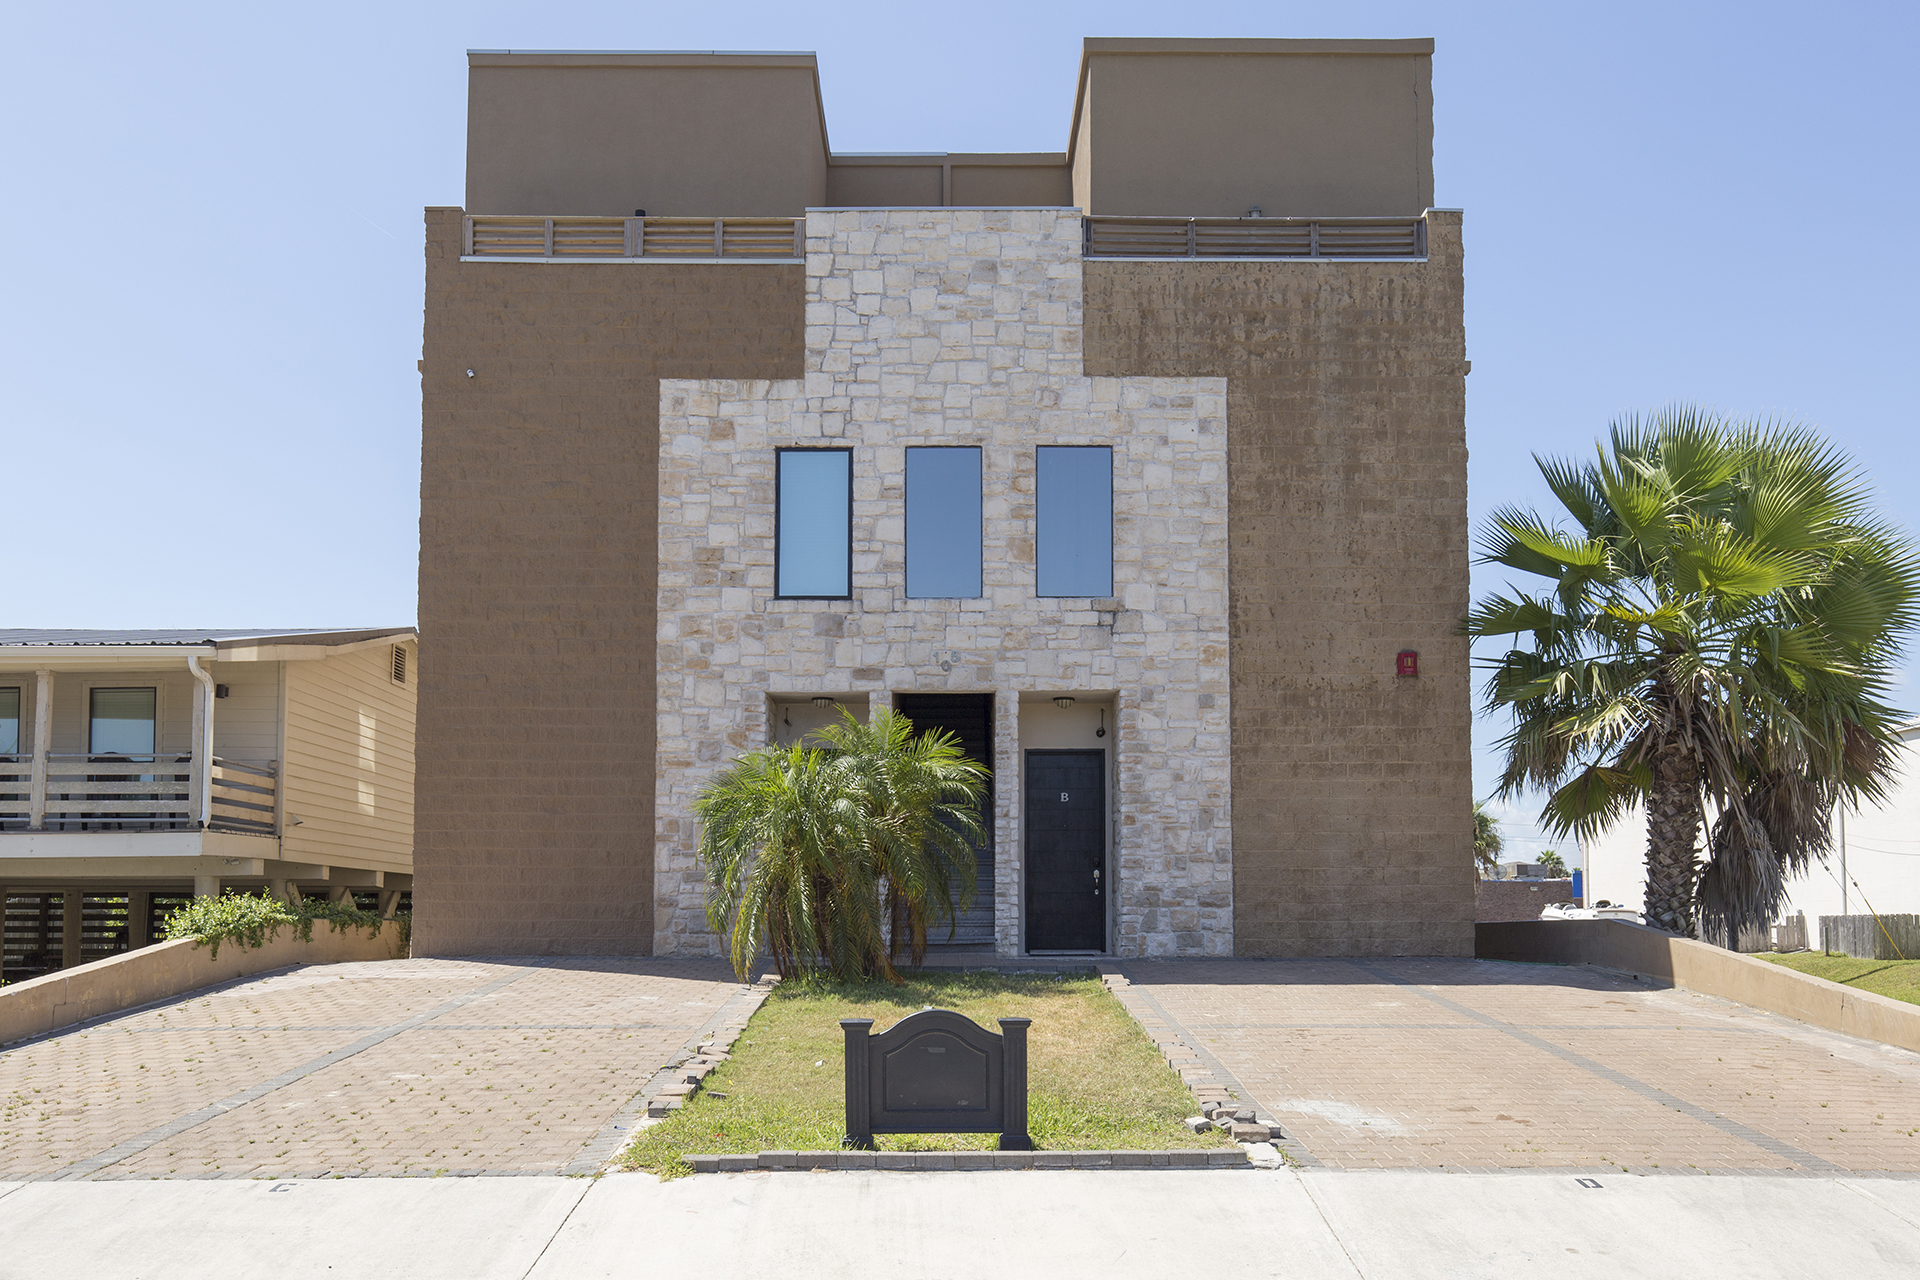 3 bedroom vacation rental in South Padre Island, TX walk to the beach